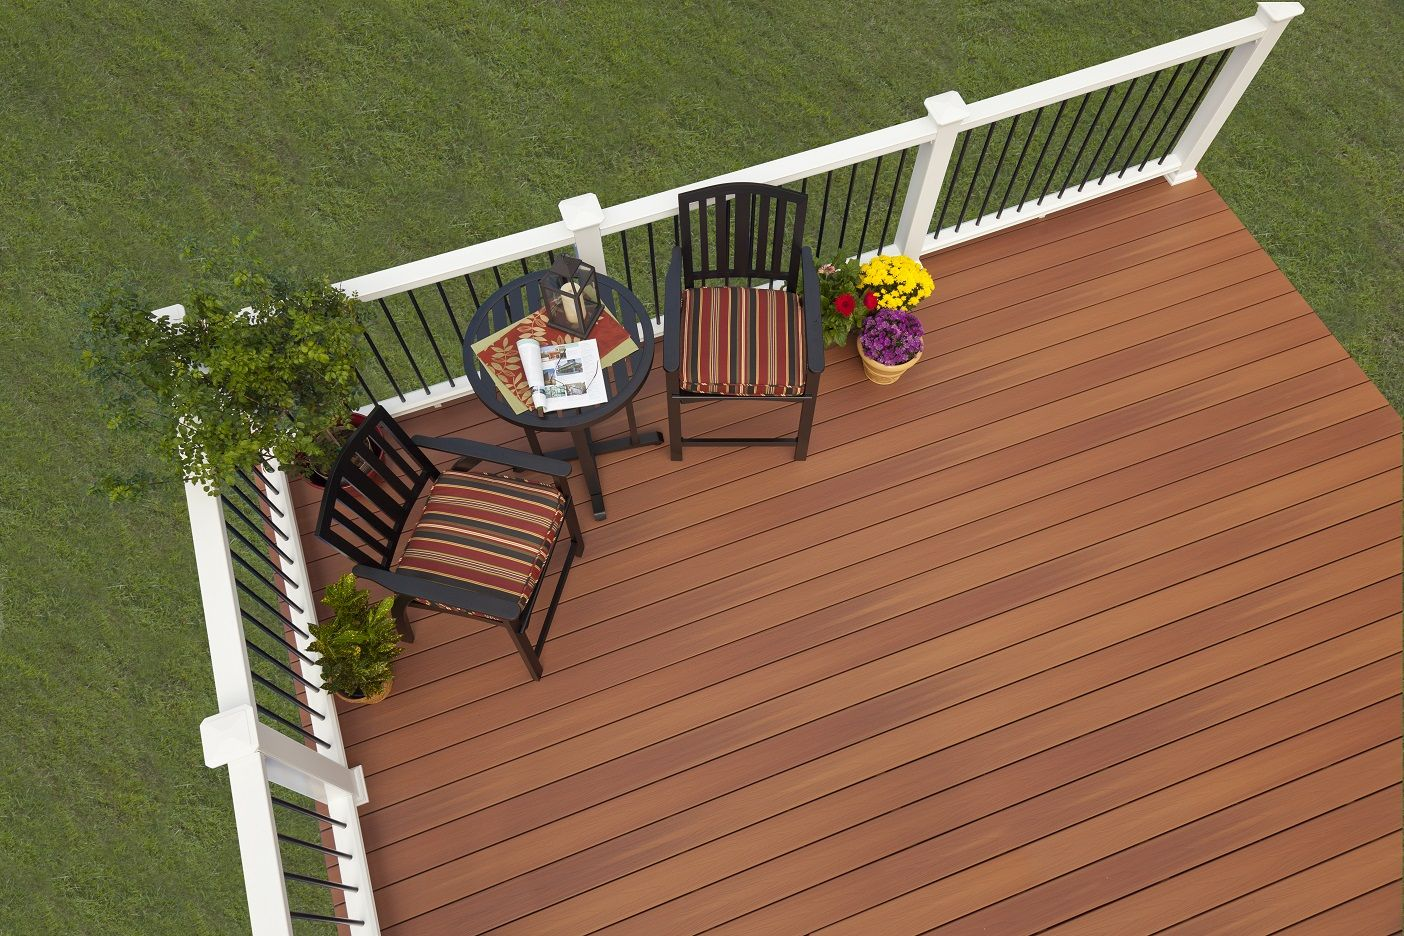 Slip Resistant Deck Stair Composite Deck Around The Swimming Pool Canada Building A Floa Building A Floating Deck Outdoor Space Design Beautiful Outdoor Spaces